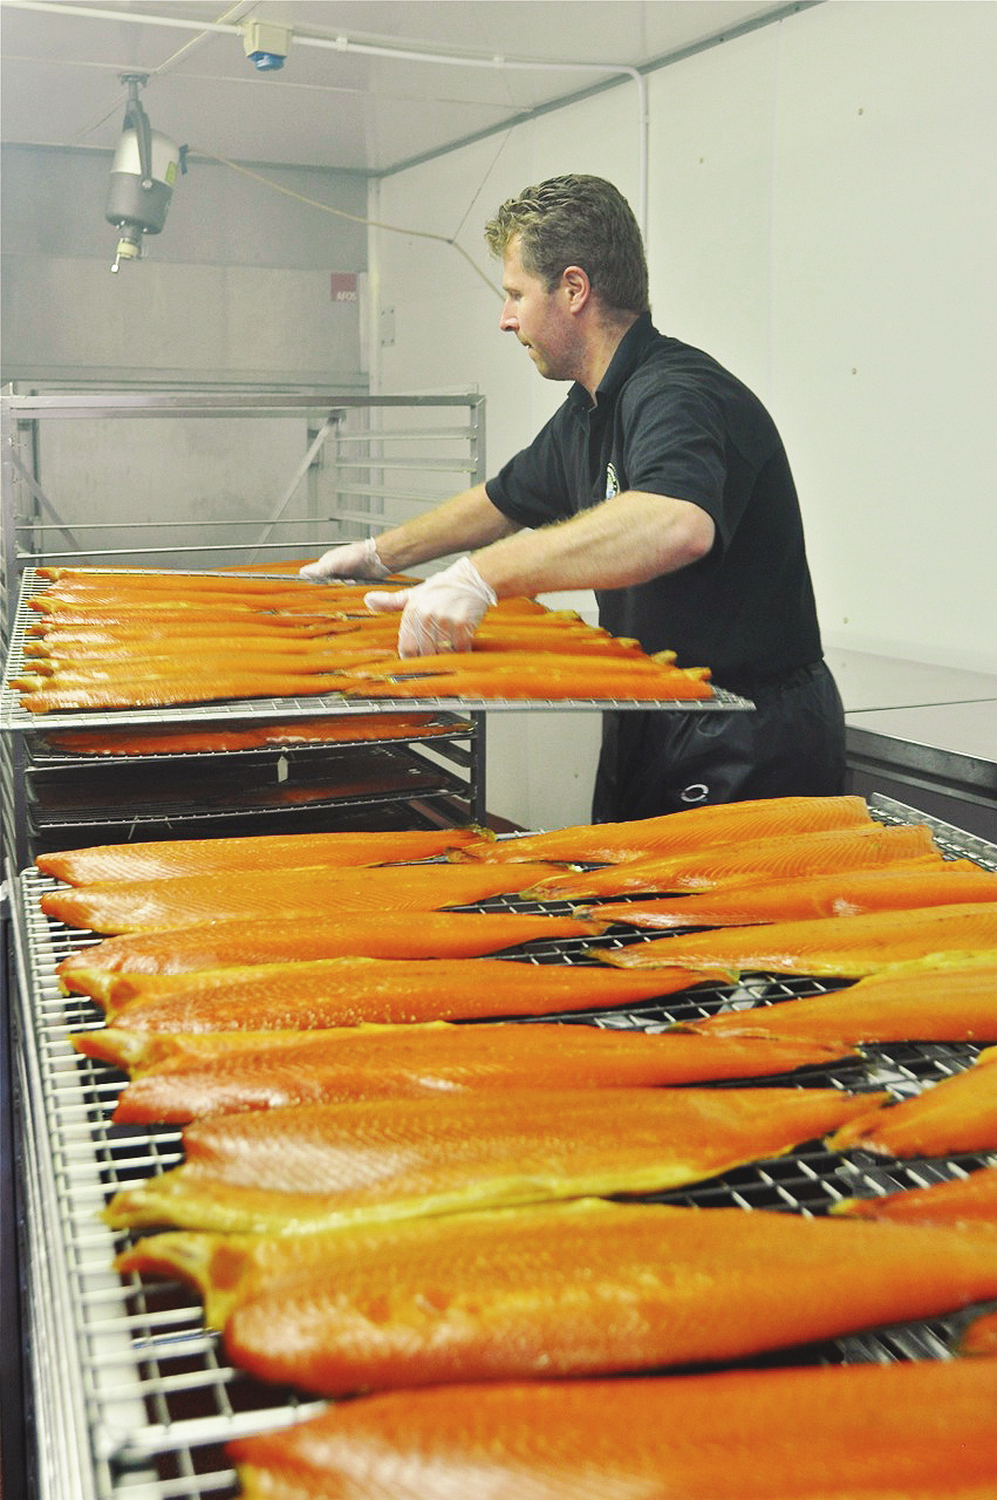 Freshly smoked salmon straight from the kiln.